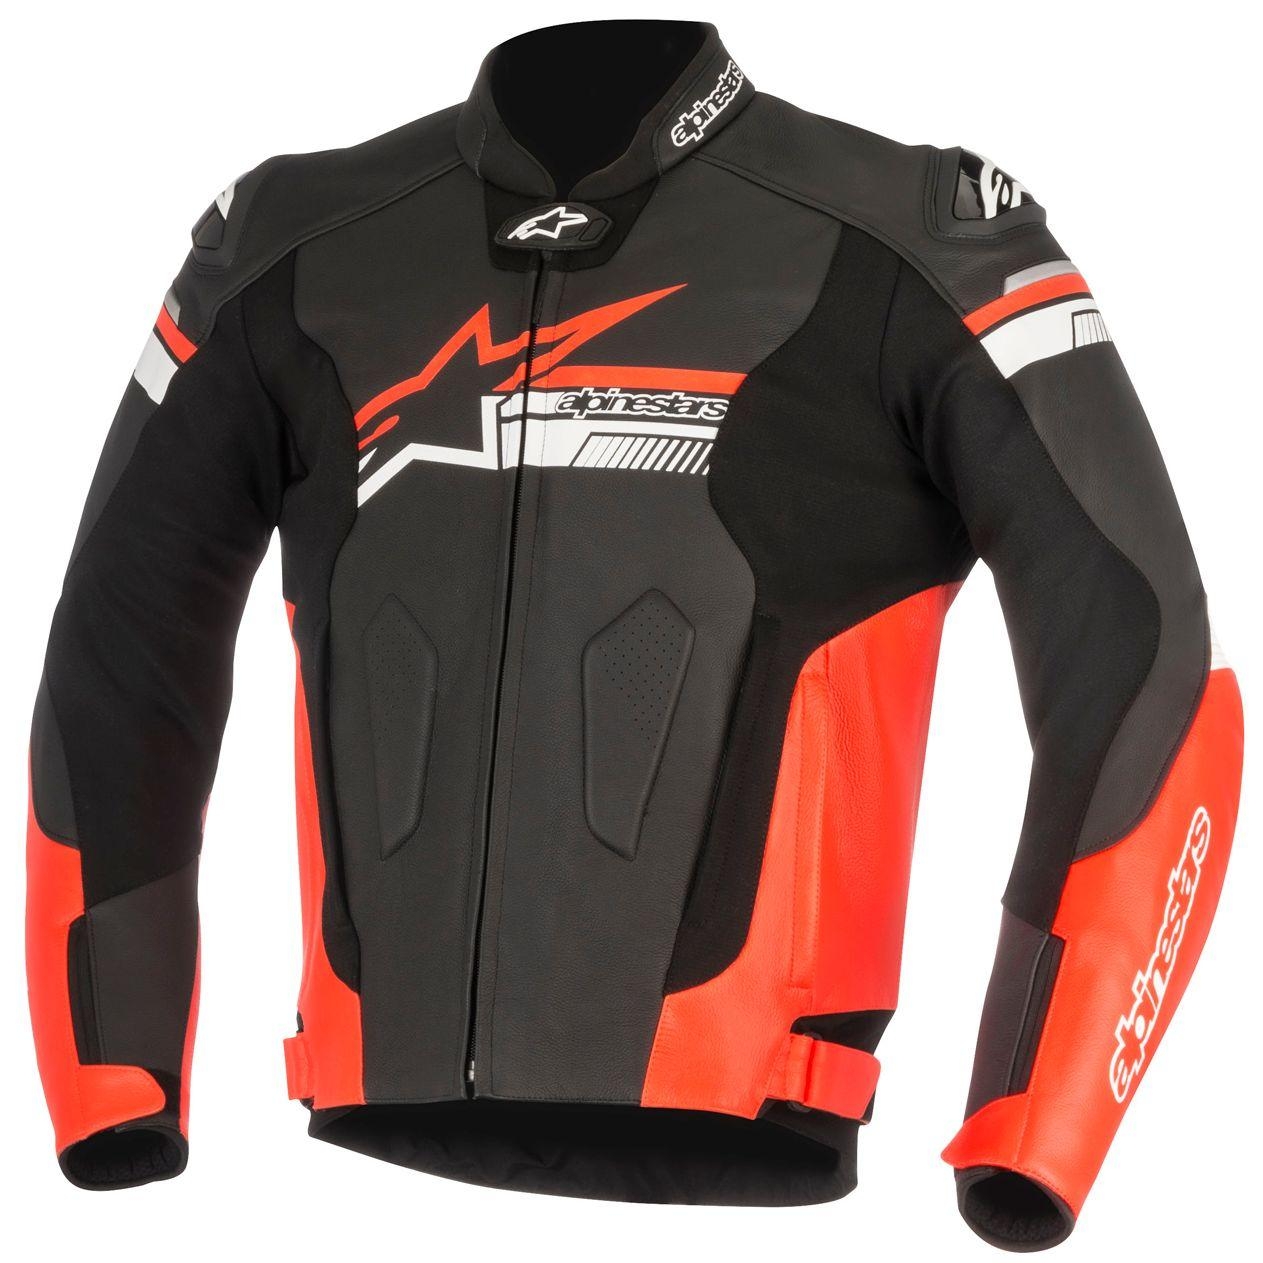 GIACCA MOTO IN PELLE ALPINESTARS FUJI BLACK RED FLUO